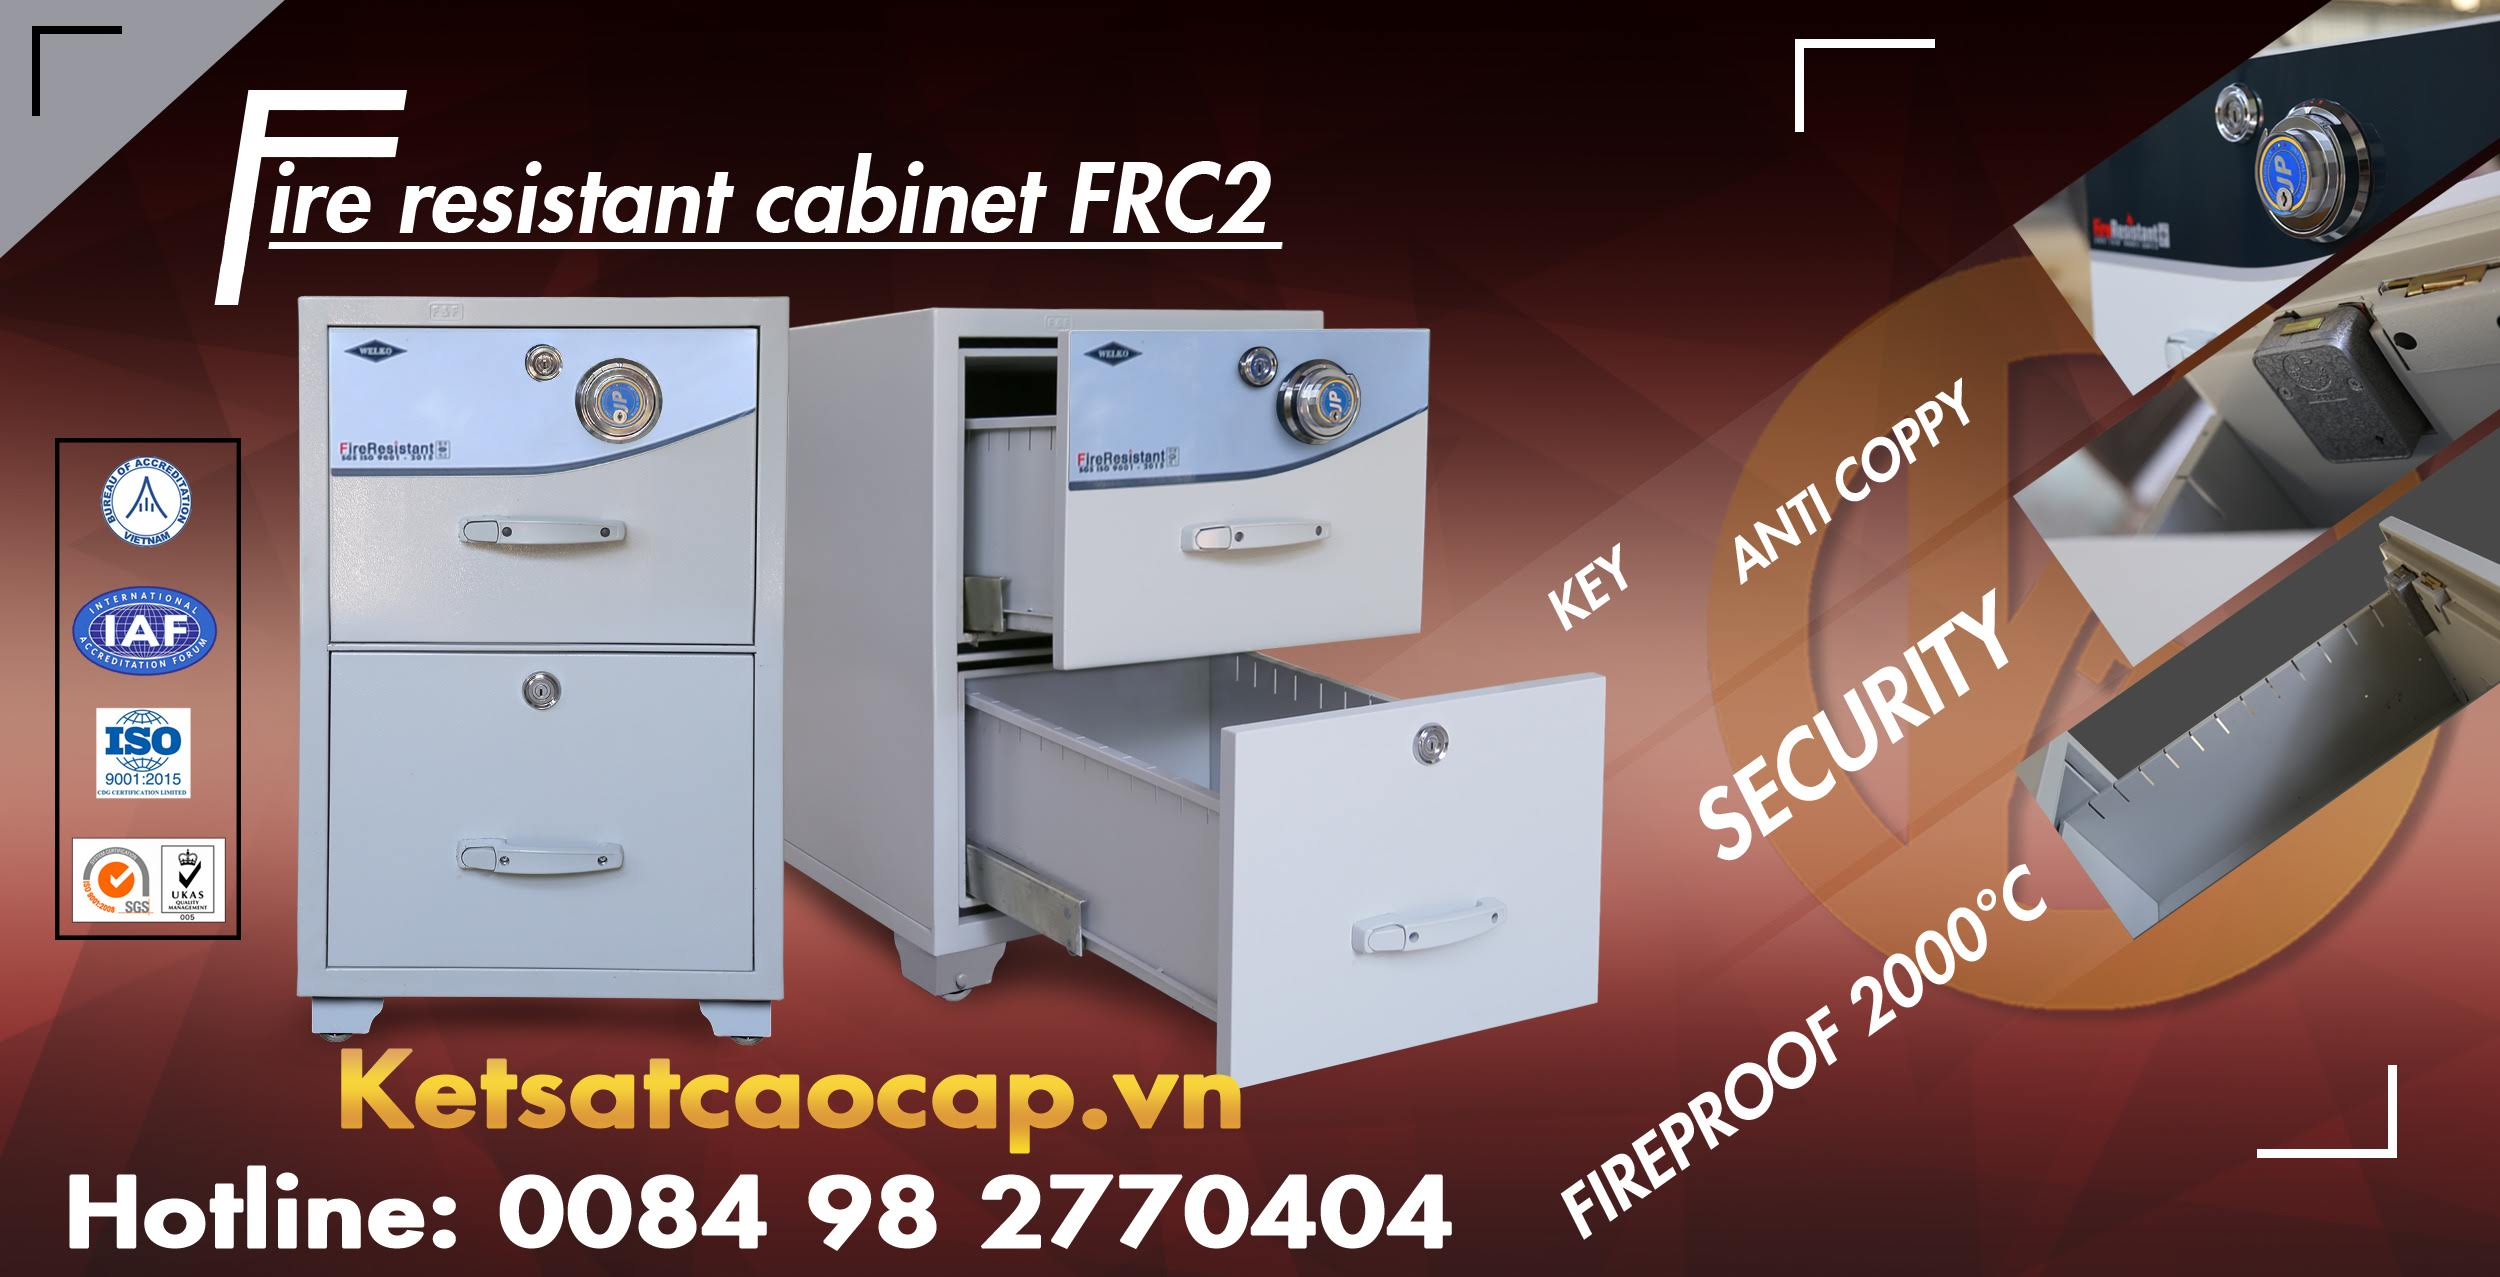 Dia chi ban tu sat an toan dung trong van phong 2 canh nho WELKO Safes Fire Resistant Cabinet uy tin